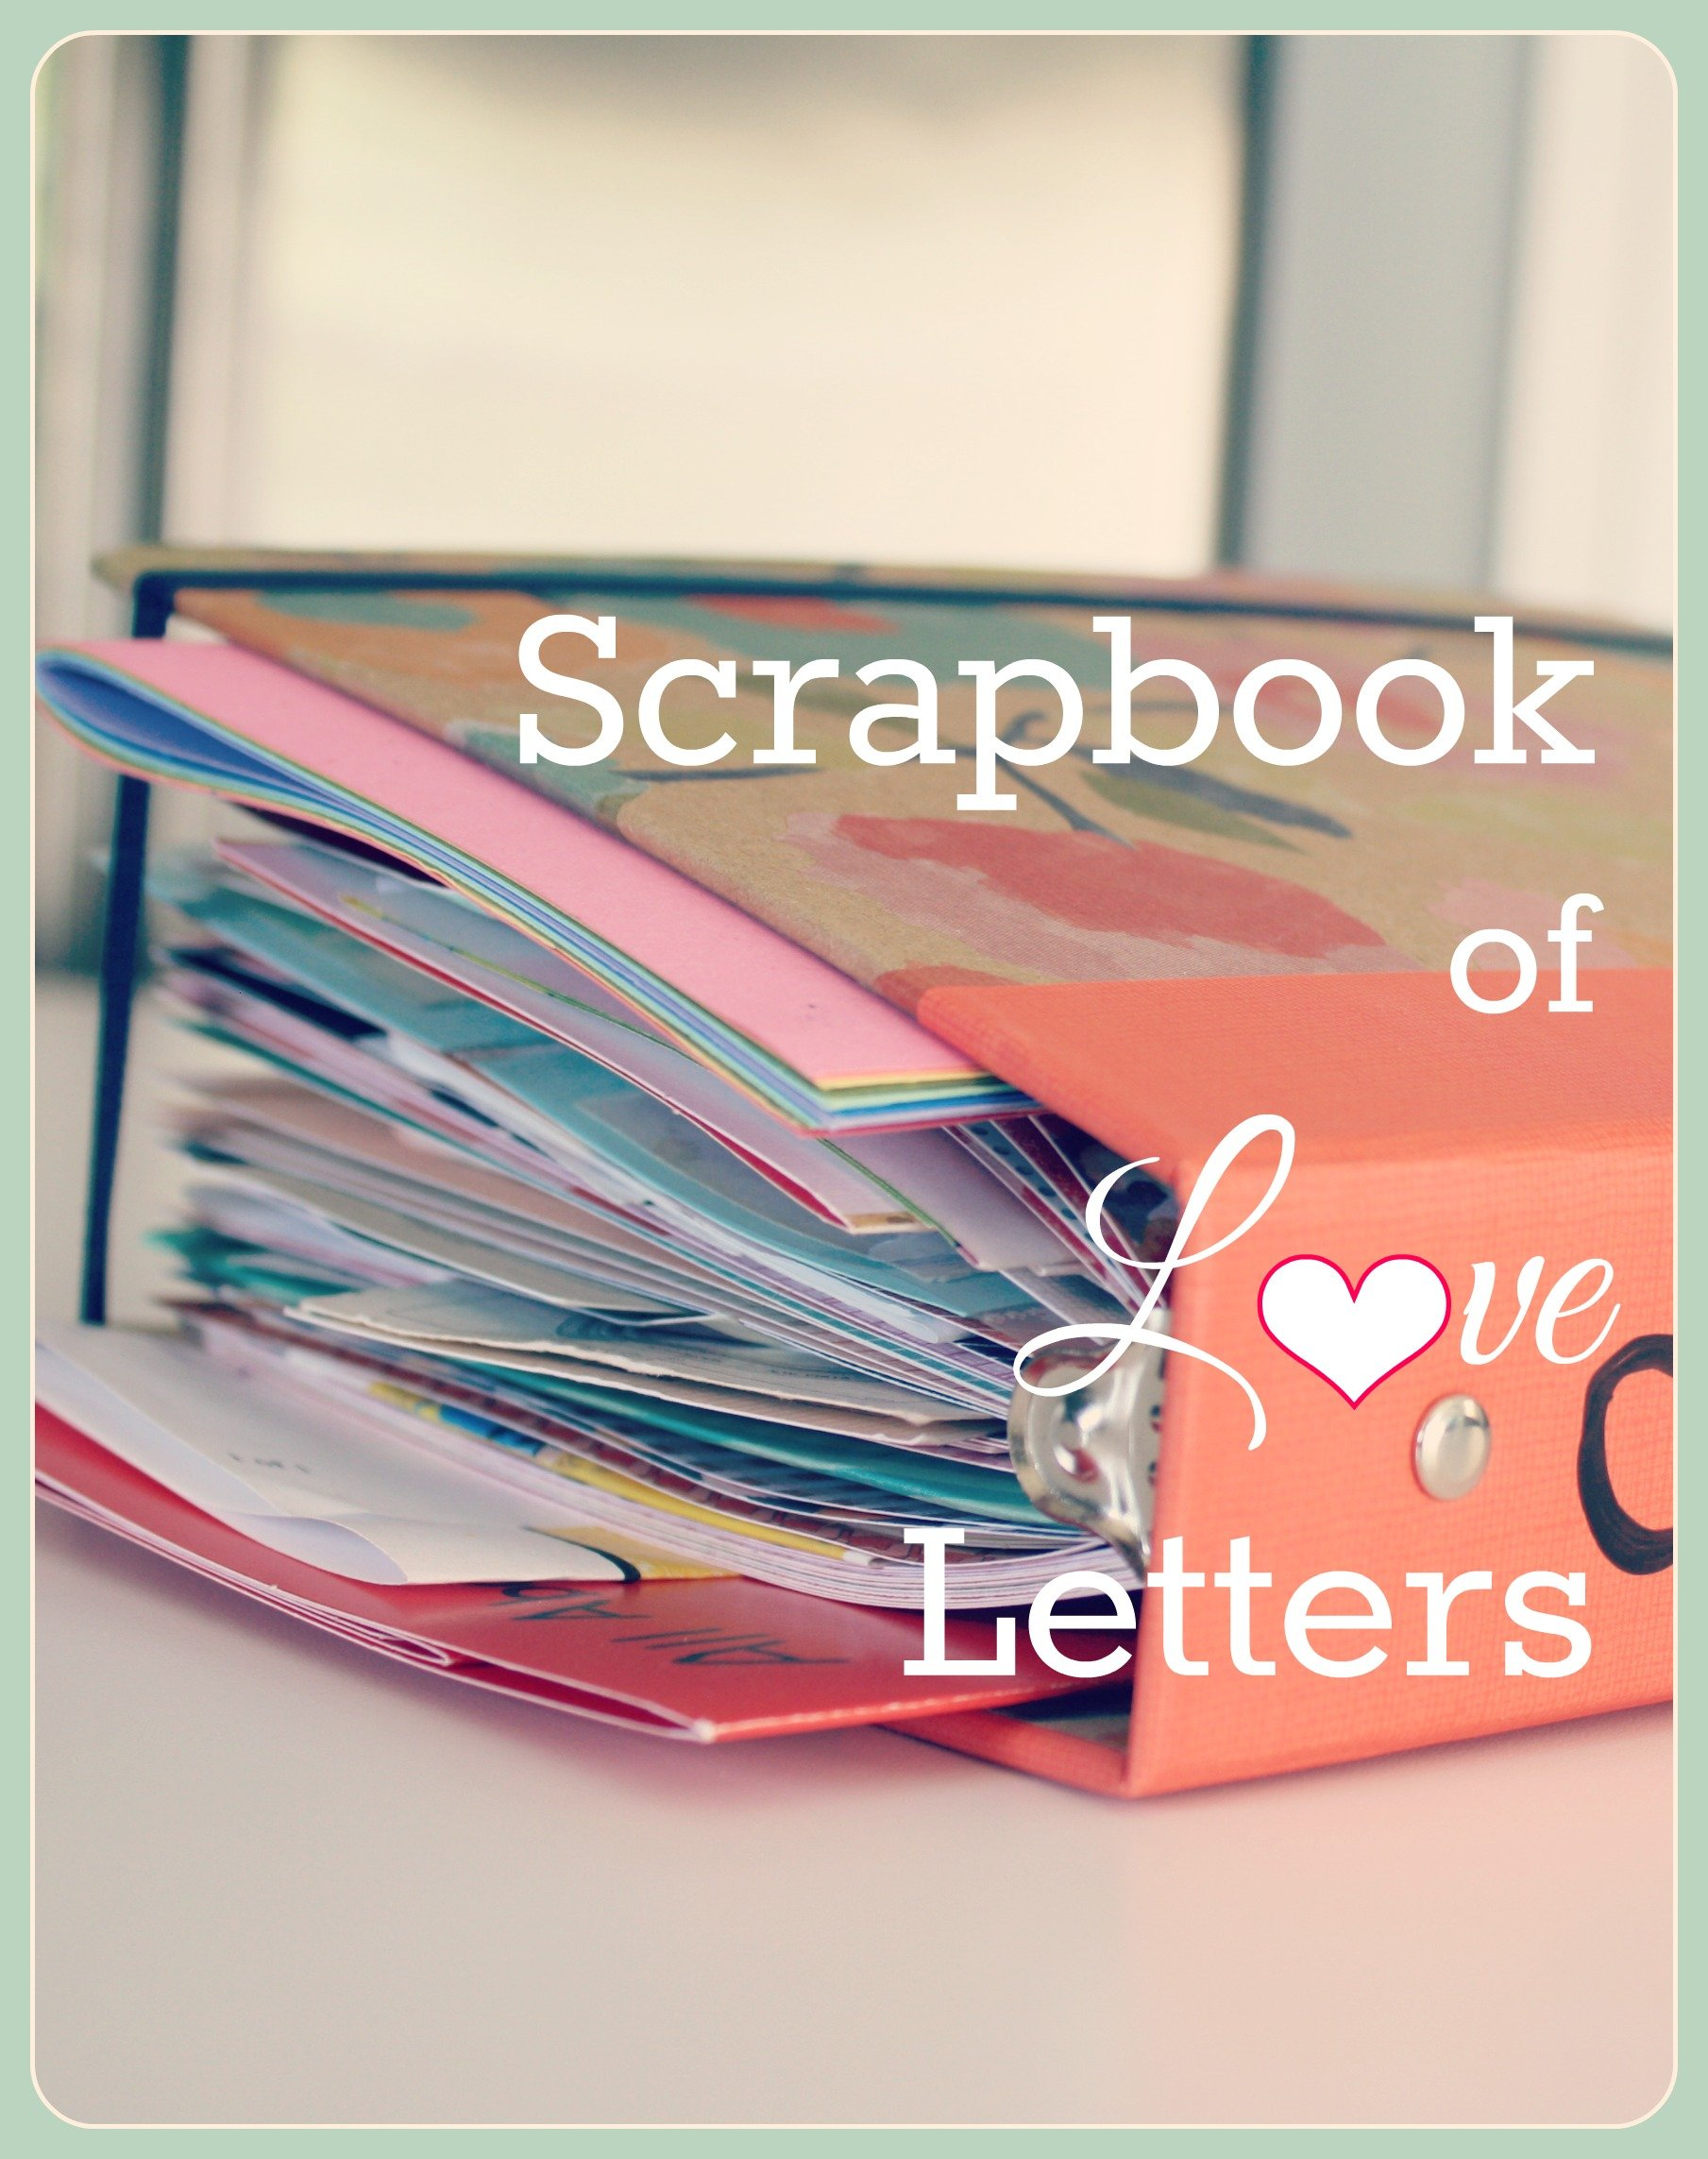 Diy Scrapbook Of Love Letters Contributor Shelly This Silly